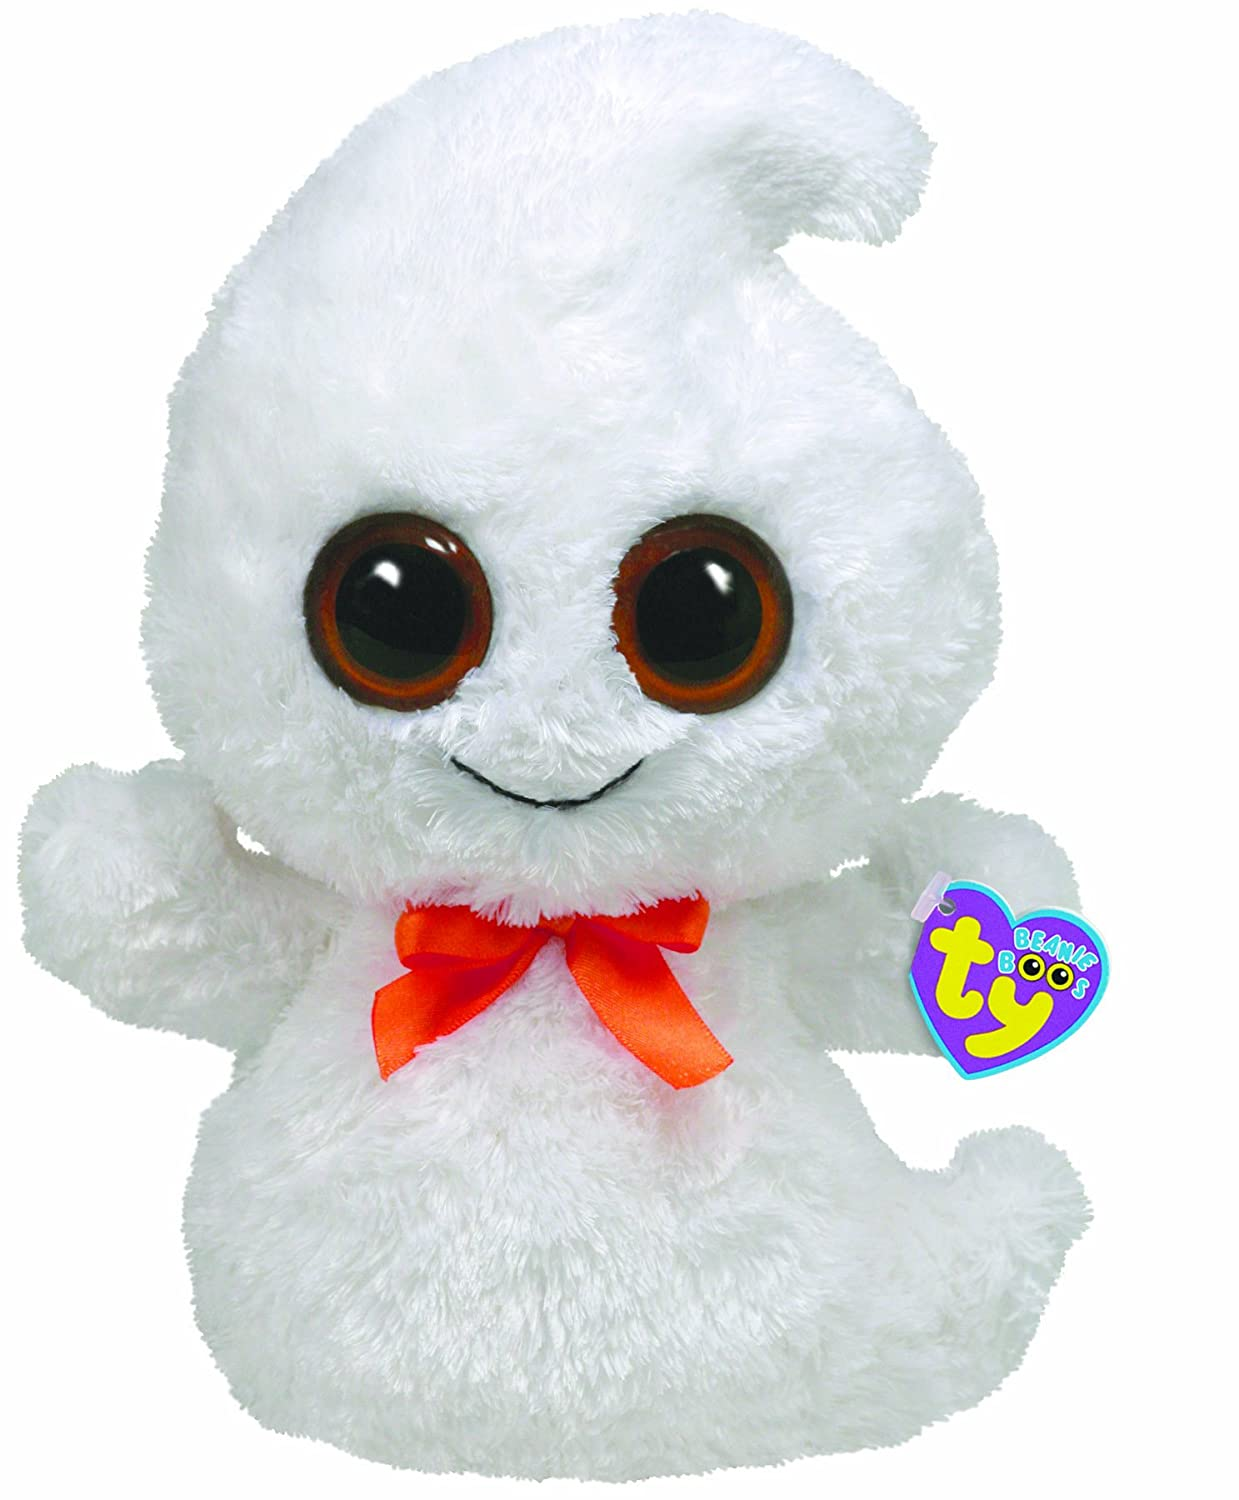 Ghosty the Ghost  10 TY Beanie Boo Buddy Plush Puppets  Amazon